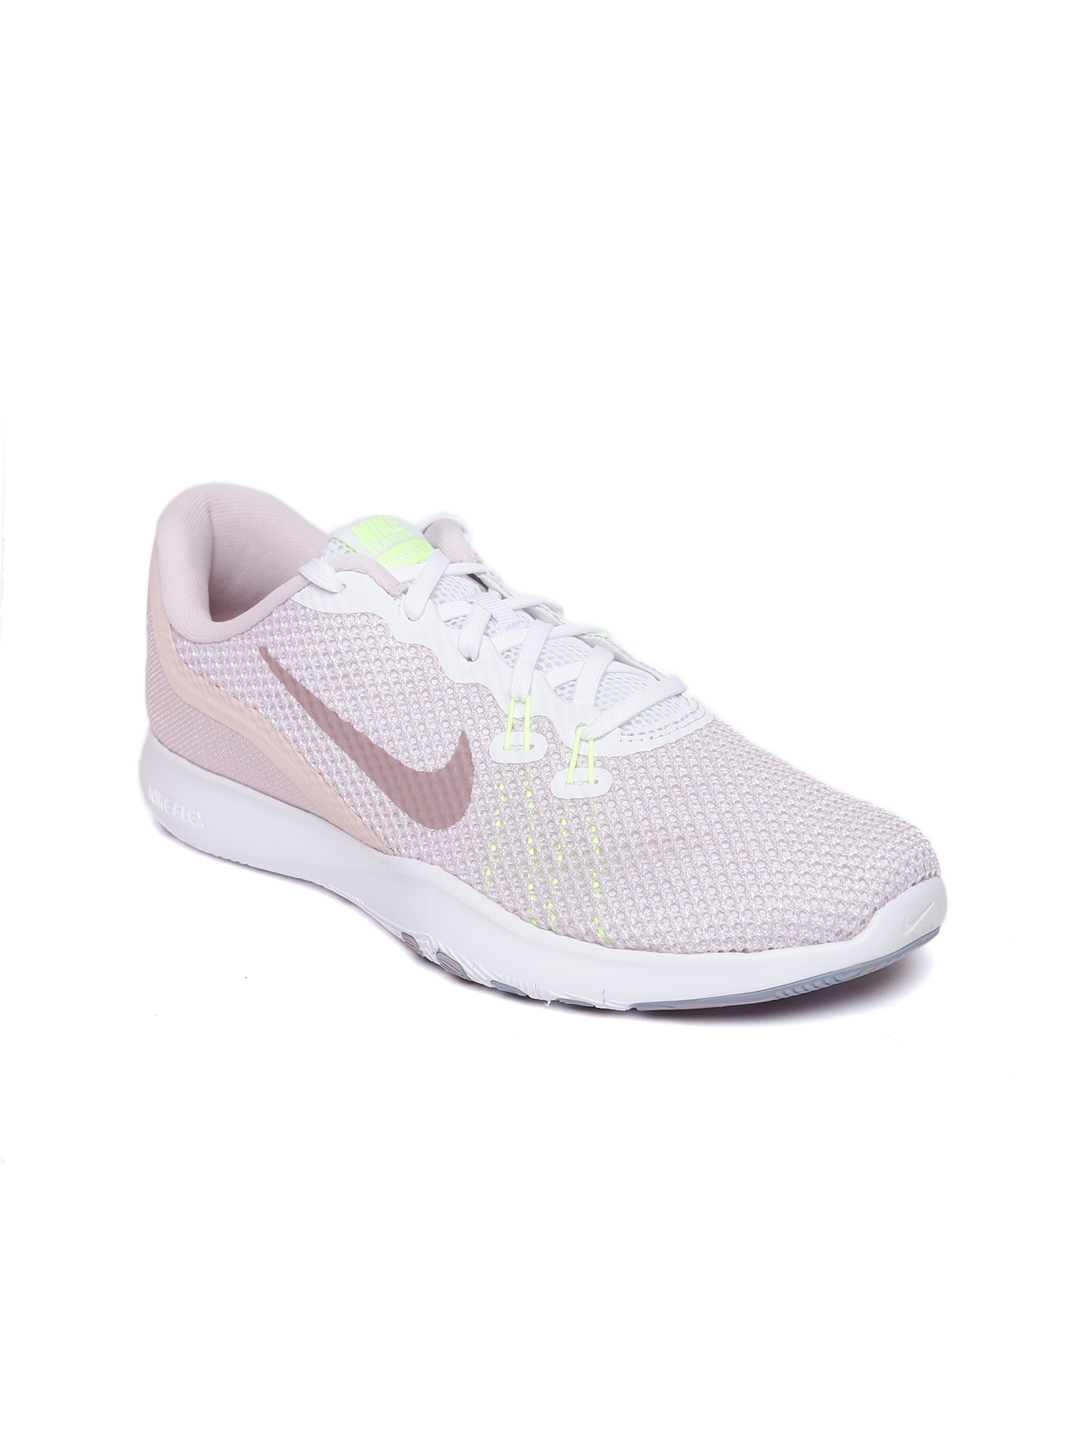 7c941b3b13dd Buy Nike Women Pink FLEX TRAINER 7 Training Shoes - Sports Shoes for ...